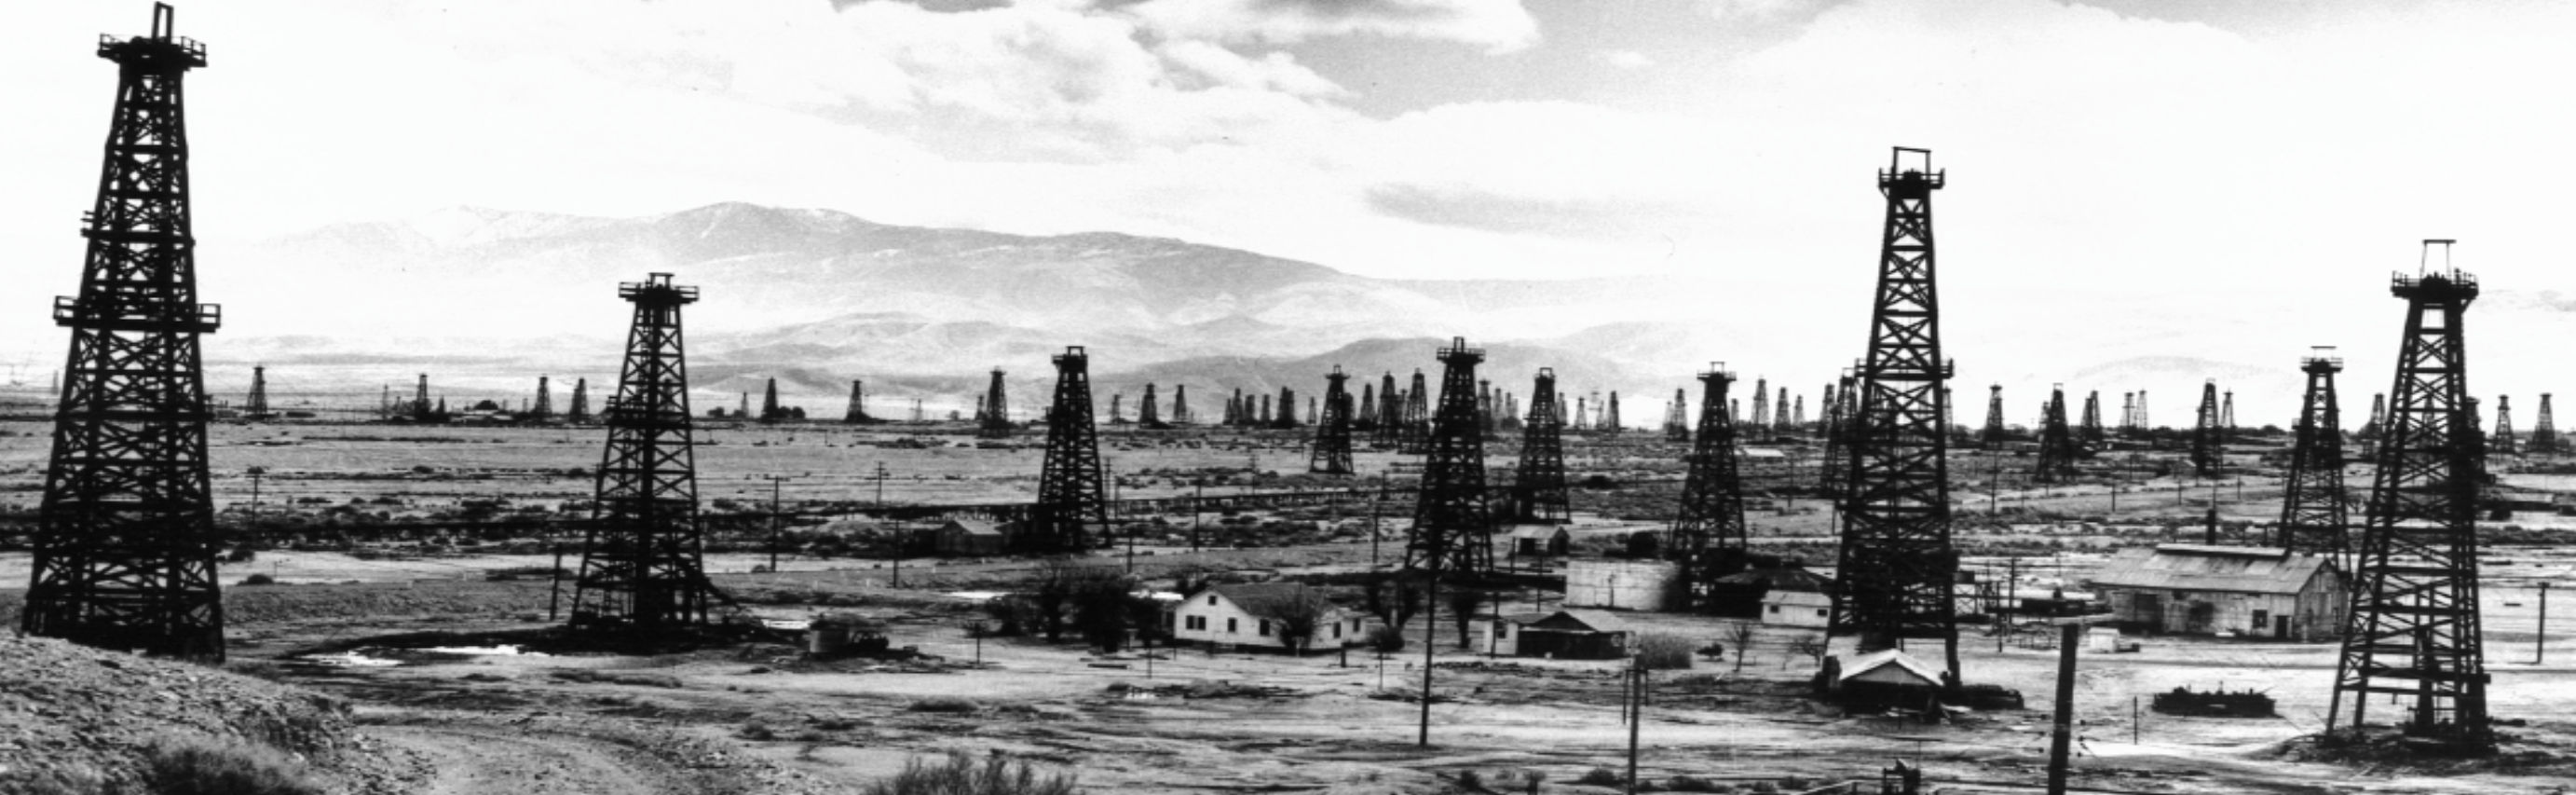 California Petroleum Industry and the Auto